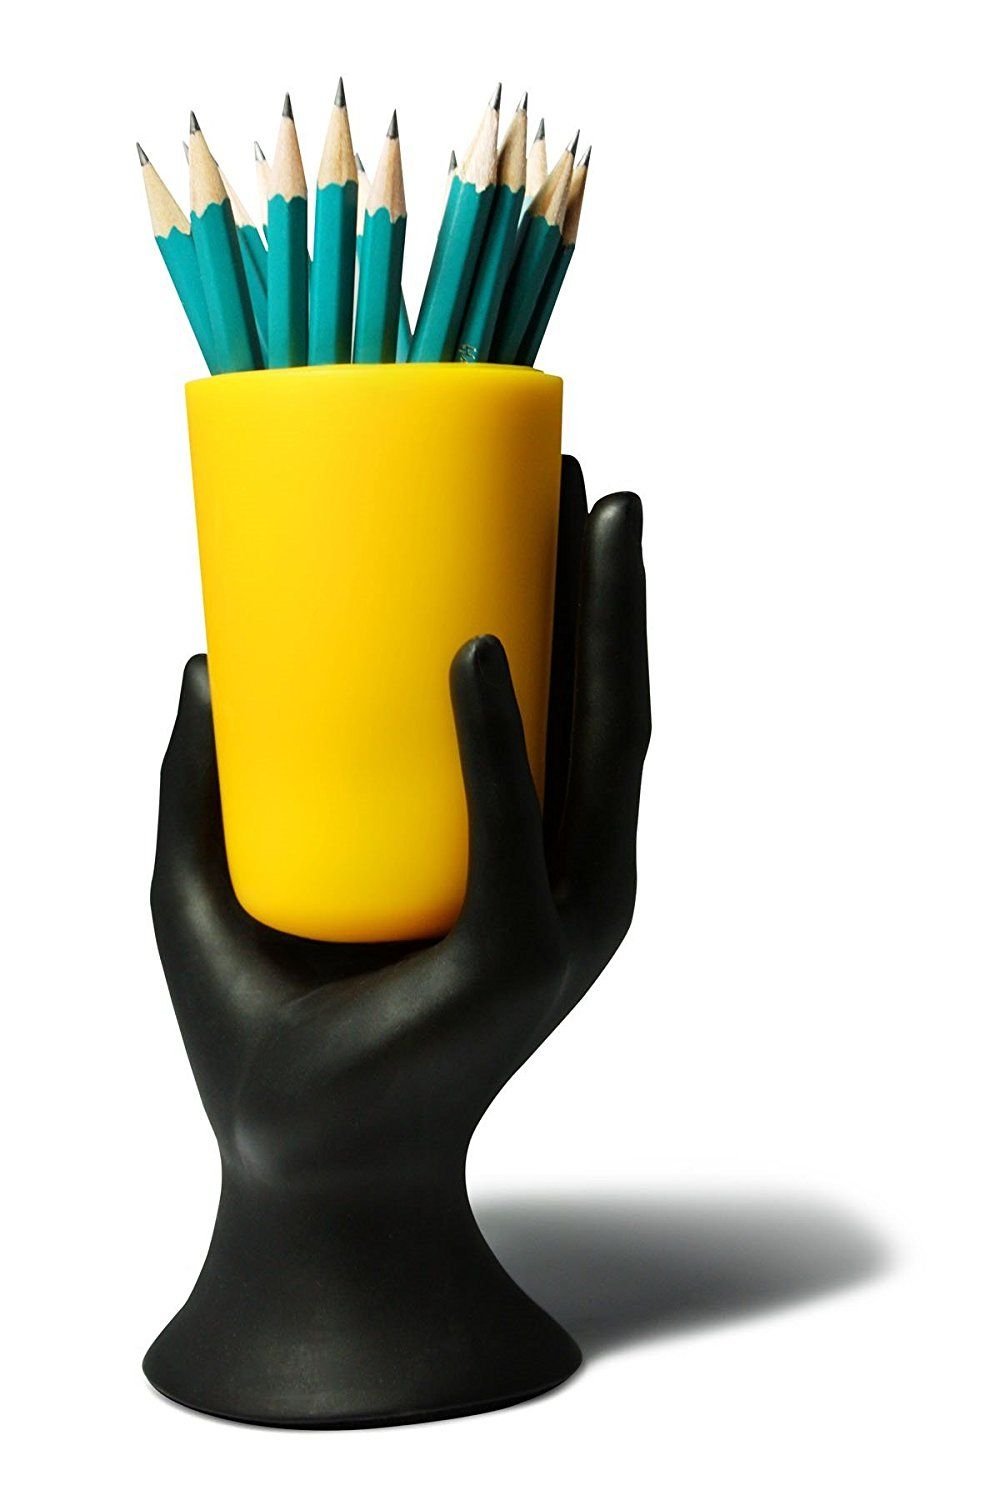 Hand That Person A Cup Of Pencils Hand Cup Pen Pencil Holder By Lilgift Pencil Cup Holder Pencil Holders For Desk Pencil Holder